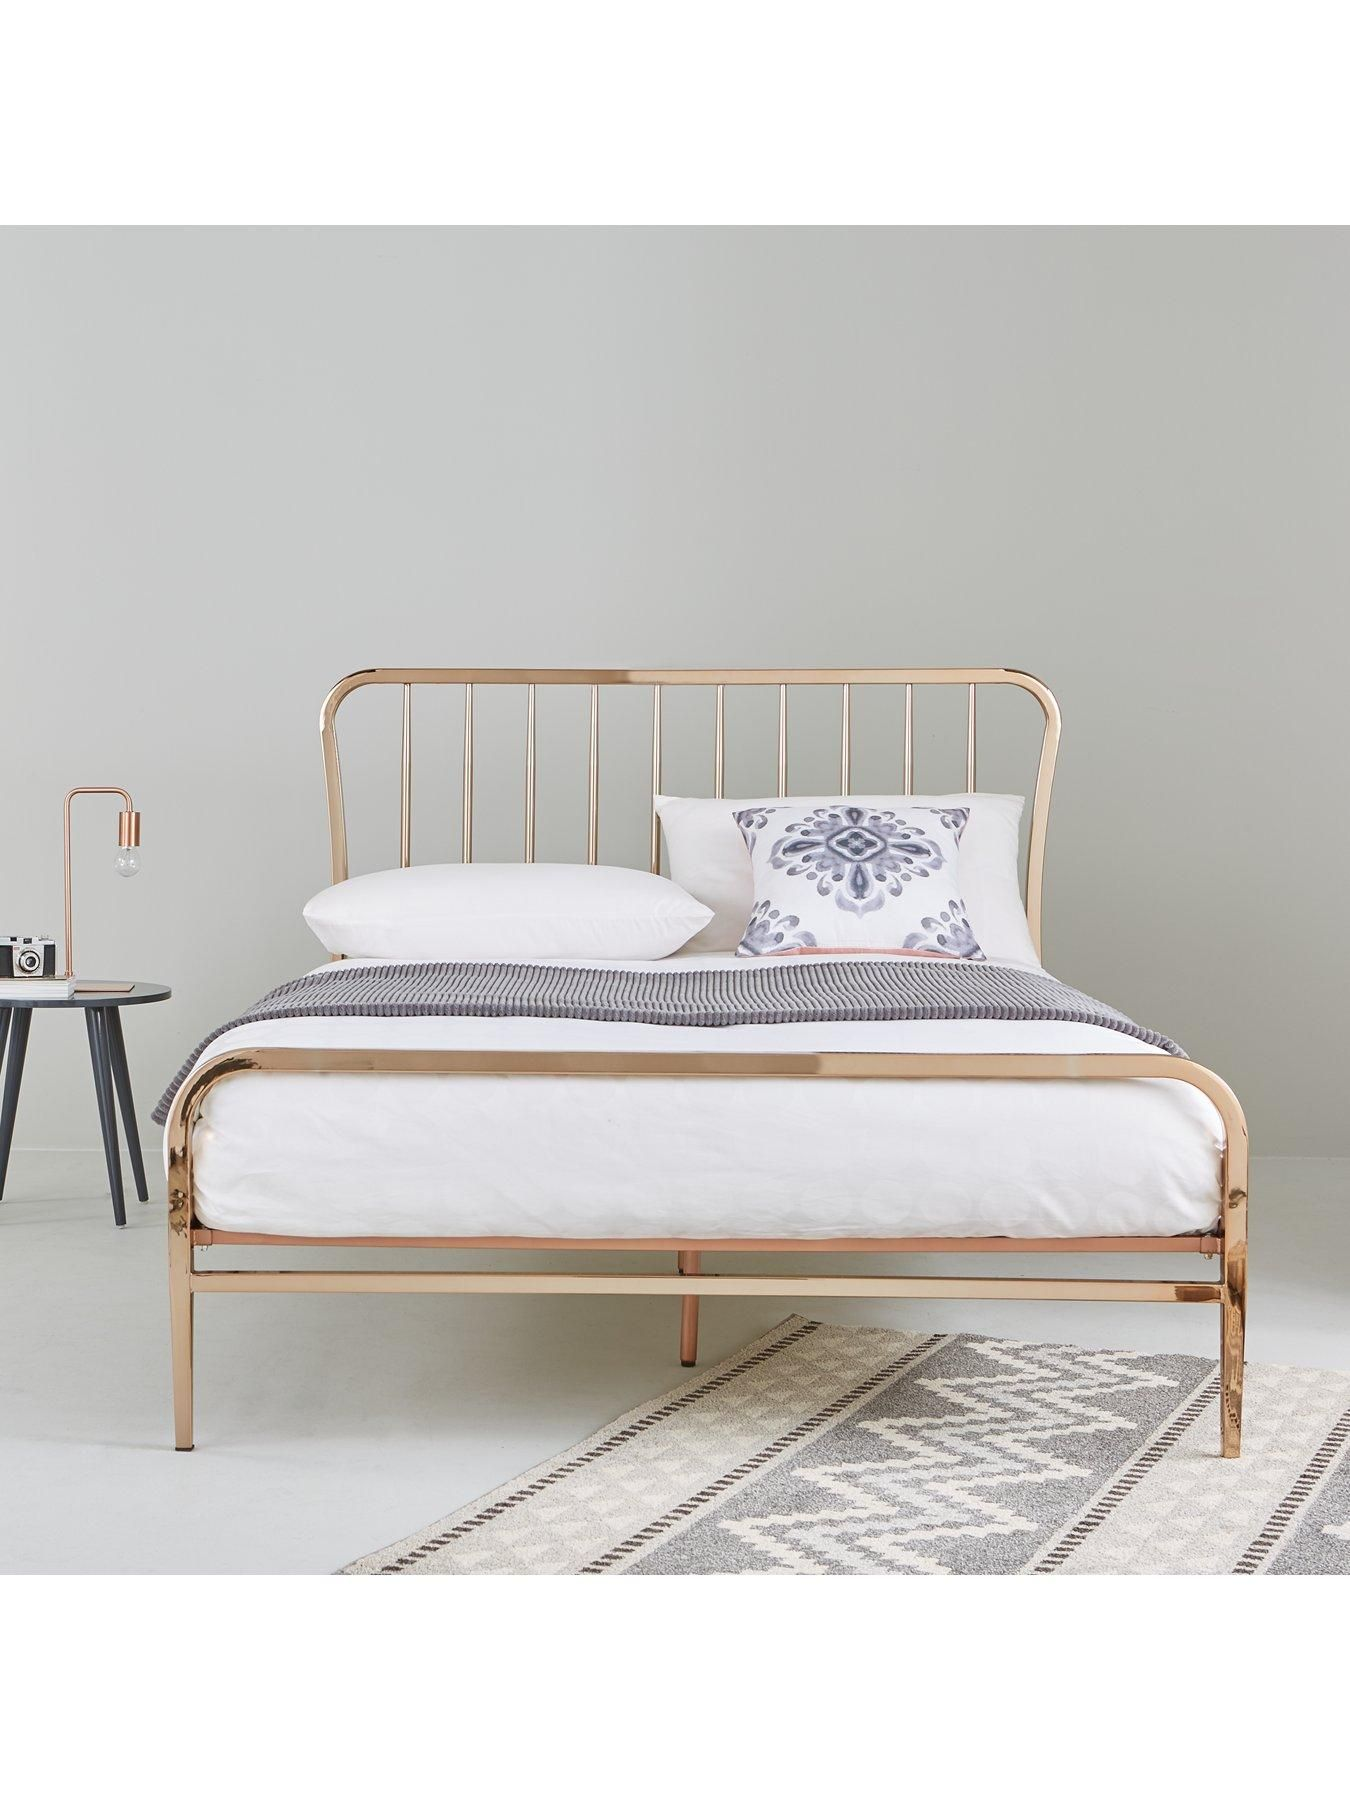 Ideal home webster metal double bed frame metal double for The best bed frames